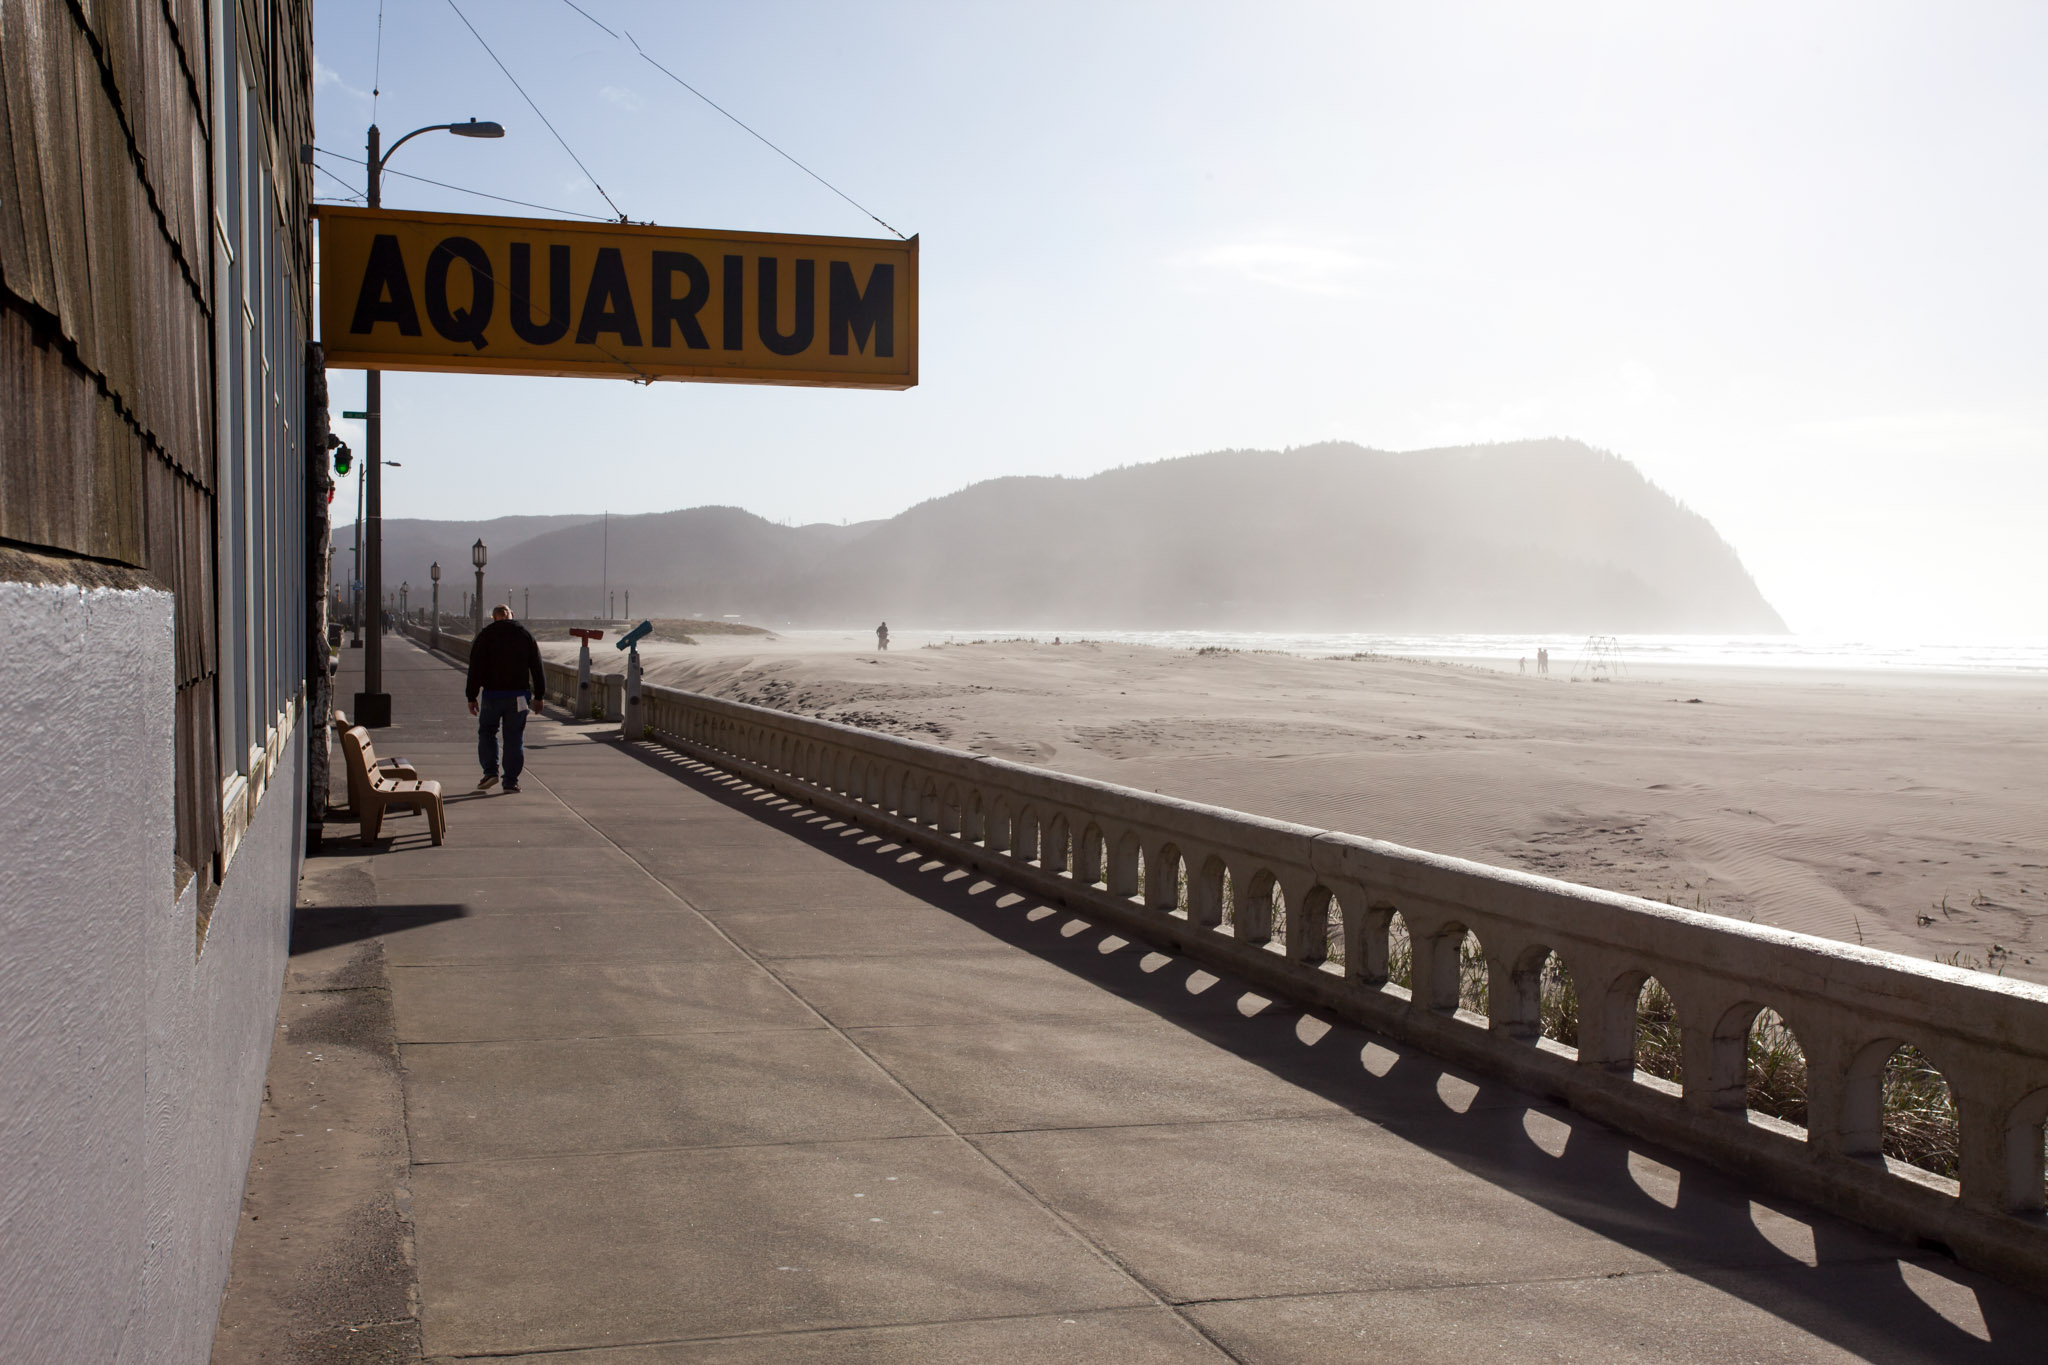 Go to the aquarium in Seaside, Oregon